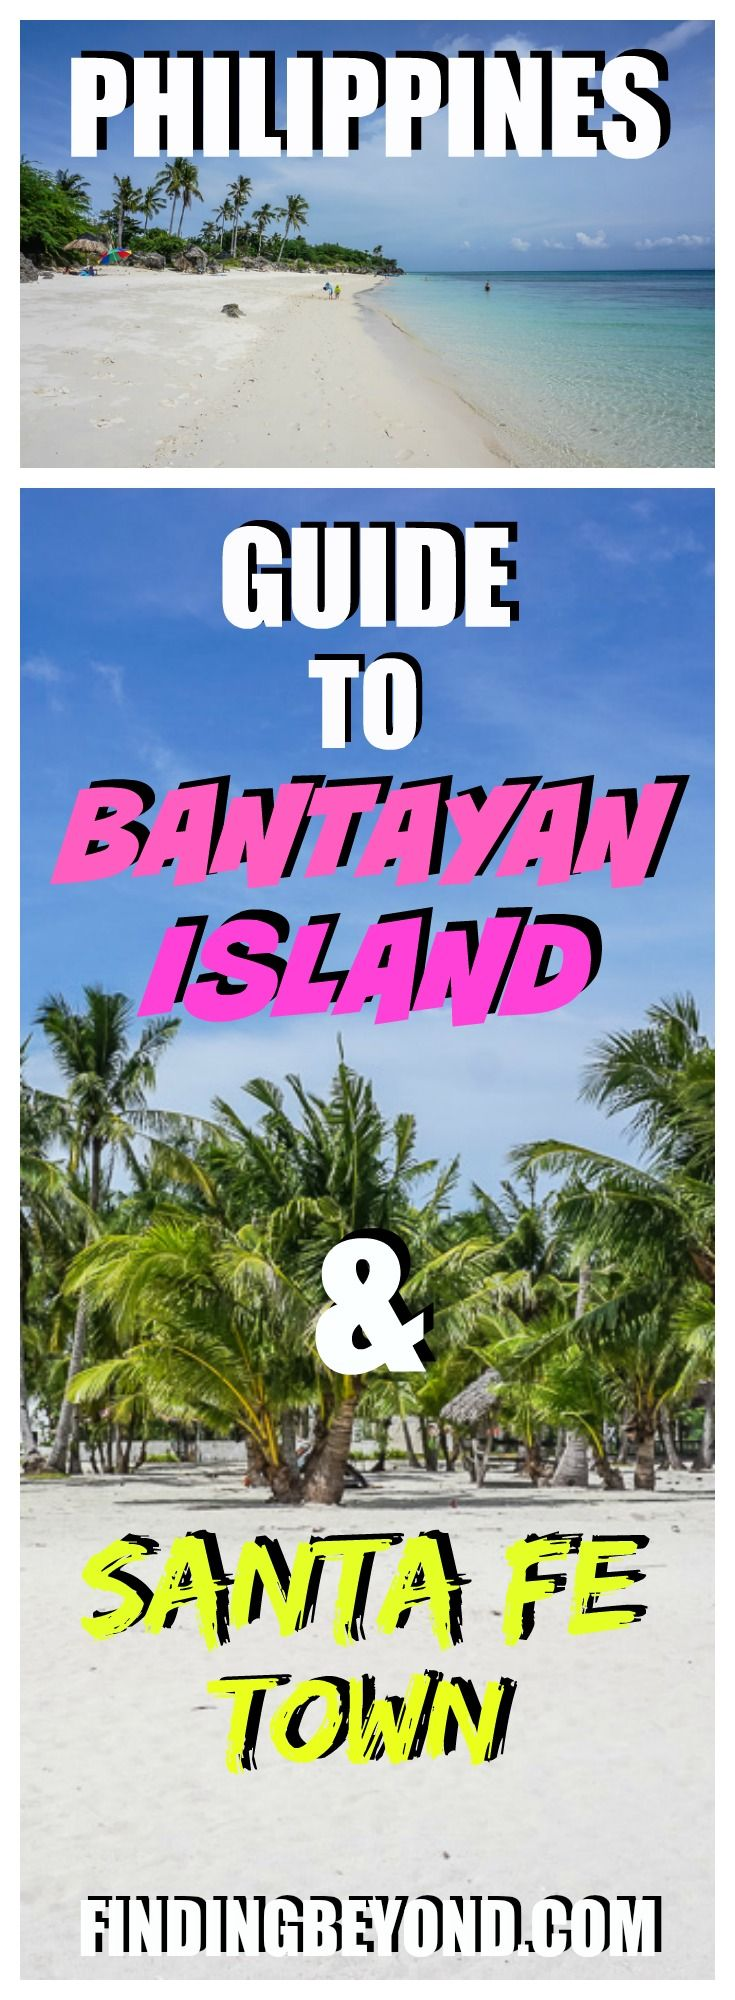 Bantayan Island, the perfect Philippine paradise? Read our #BantayanIsland guide and #SantaFe information to help build your Bantayan island itinerary. | Best of the #Philippines | Top Islands to visit in the Philippines | Backpacking in the Philippines | Philippines on a Budget | Paradise Beach on Bantayan Island | Islands to visit near Cebu | Top beaches in the Philippines | #philippinebeaches #philippineislands #bantayanislandguide #bestofphilippines